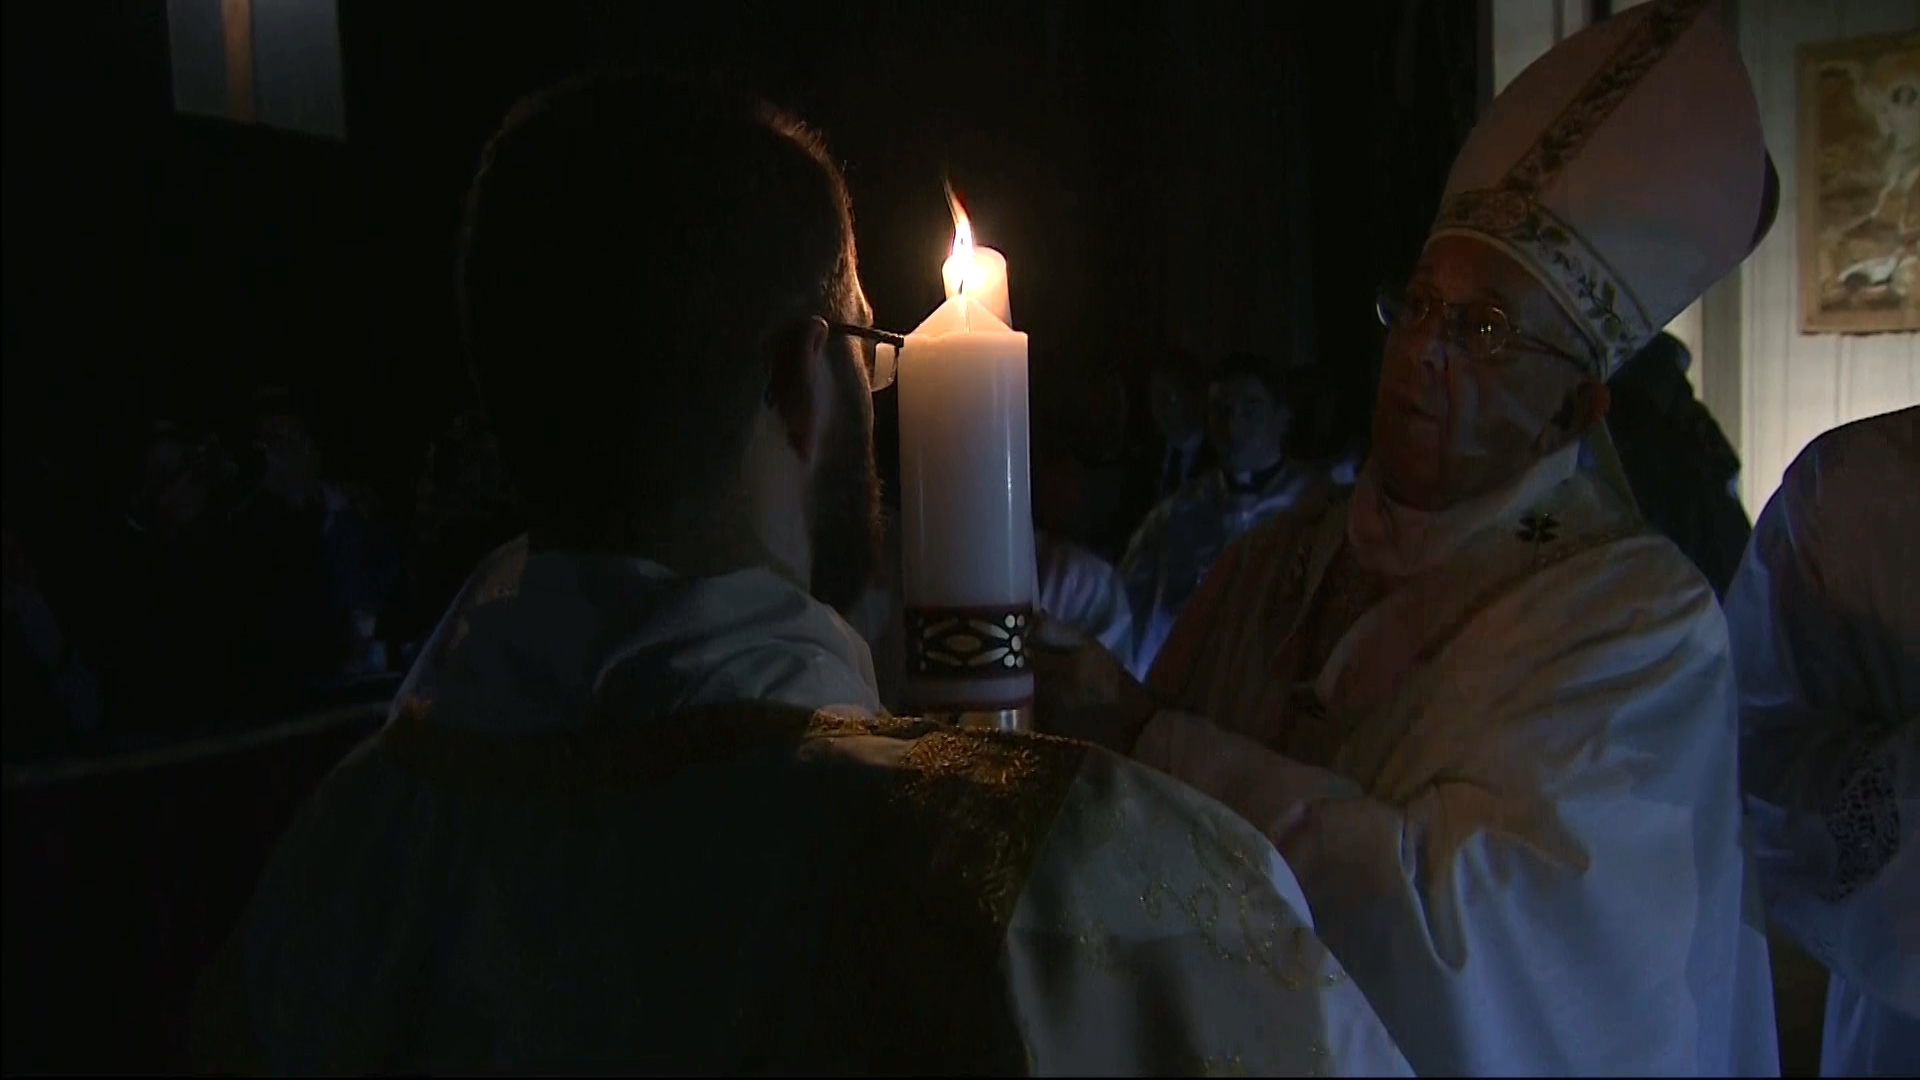 Holding up the Paschal candle at the Vatican's Easter Vigil Mass.